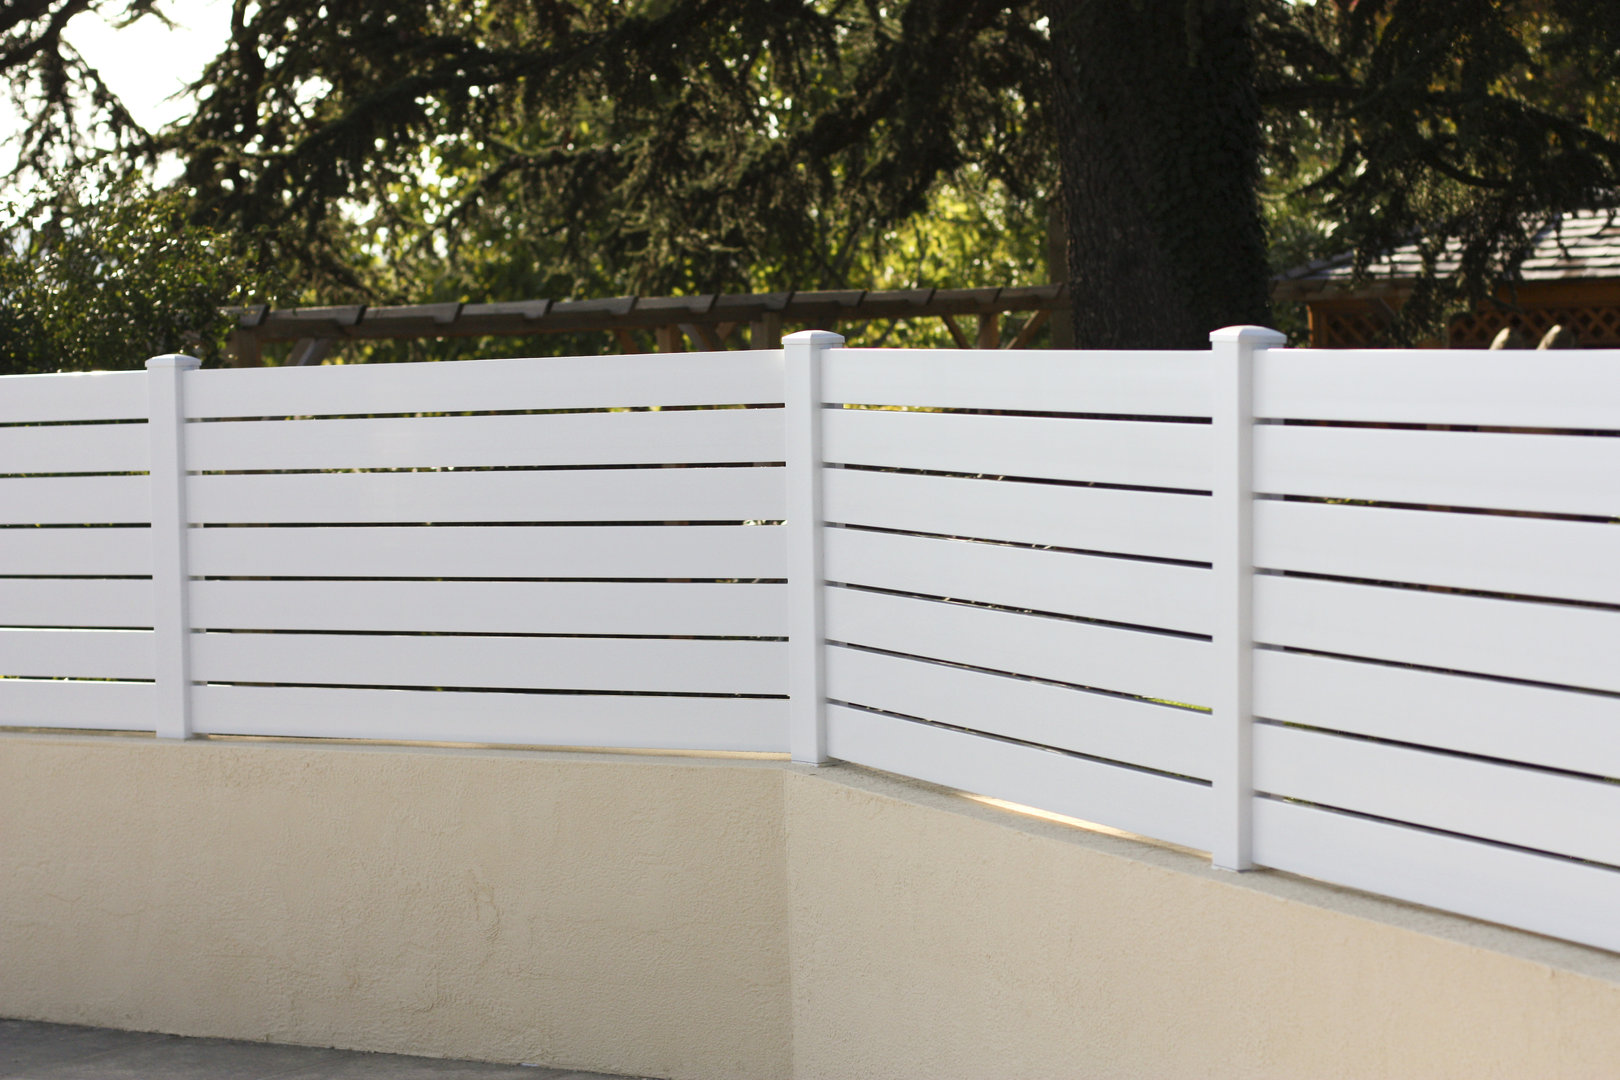 Cl ture pvc achille personnalisable jardinprixbas com for Cloture exterieur pvc